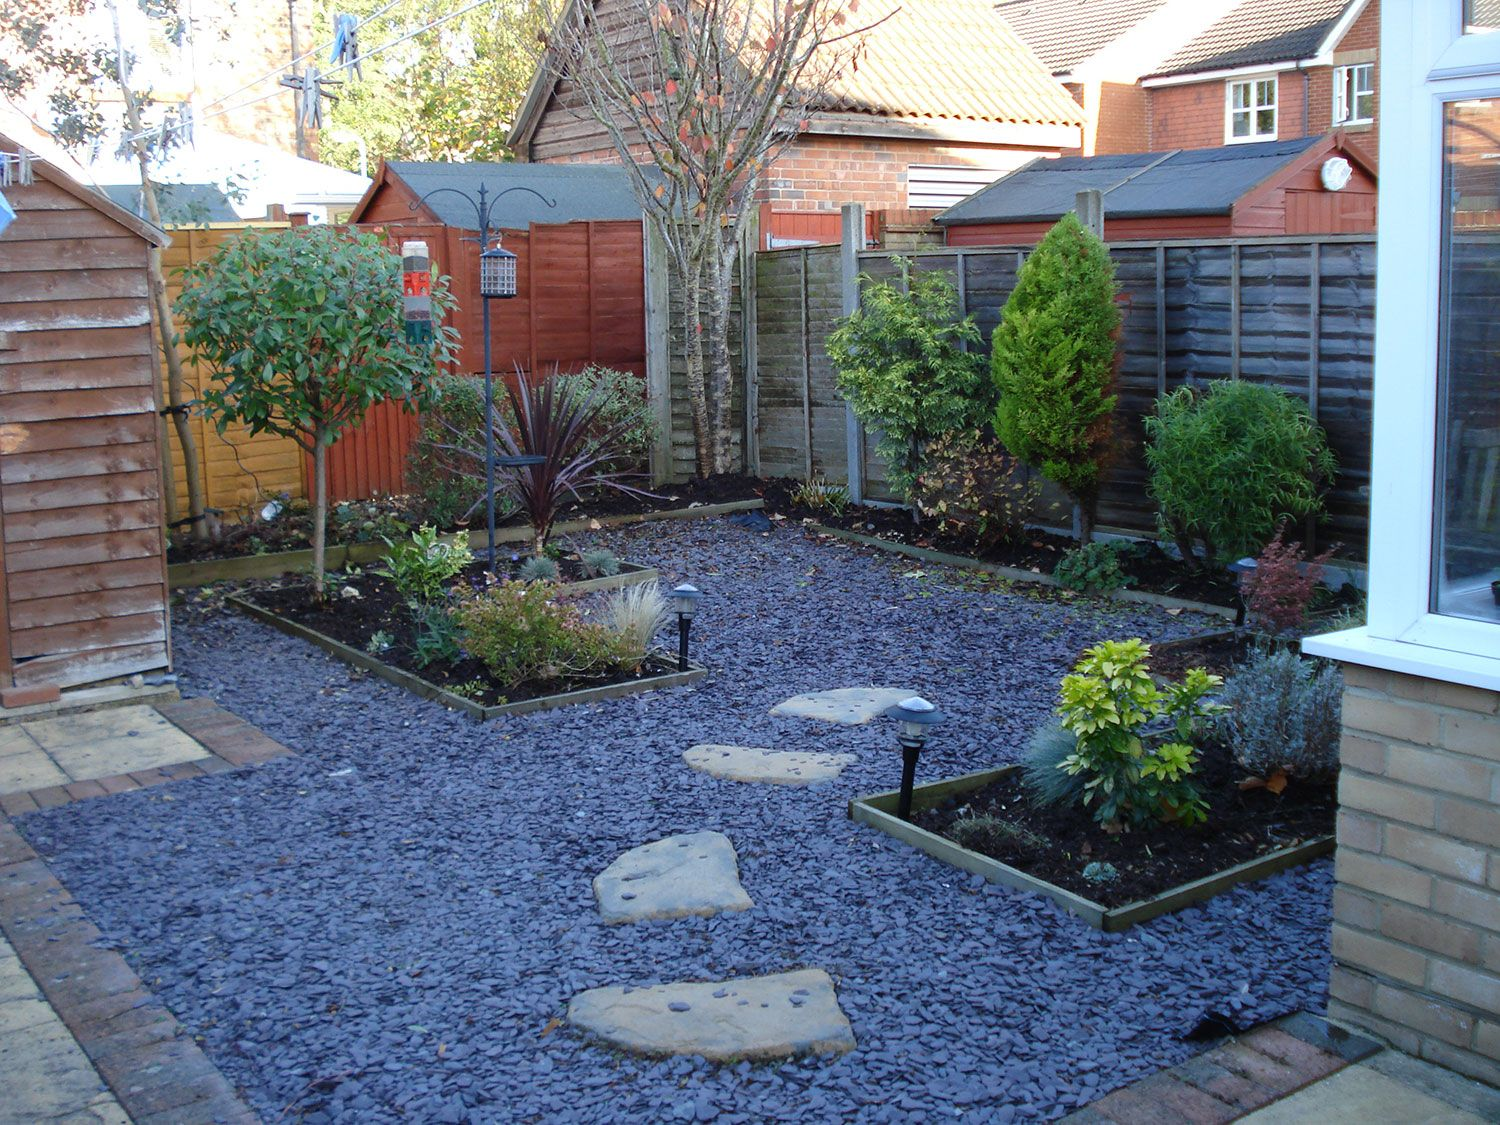 Beautify Your Outdoor Space With Some Stunning Courtyard Landscaping Easy Backyard Landscaping Backyard Landscaping Designs No Grass Backyard Modern garden ideas no grass